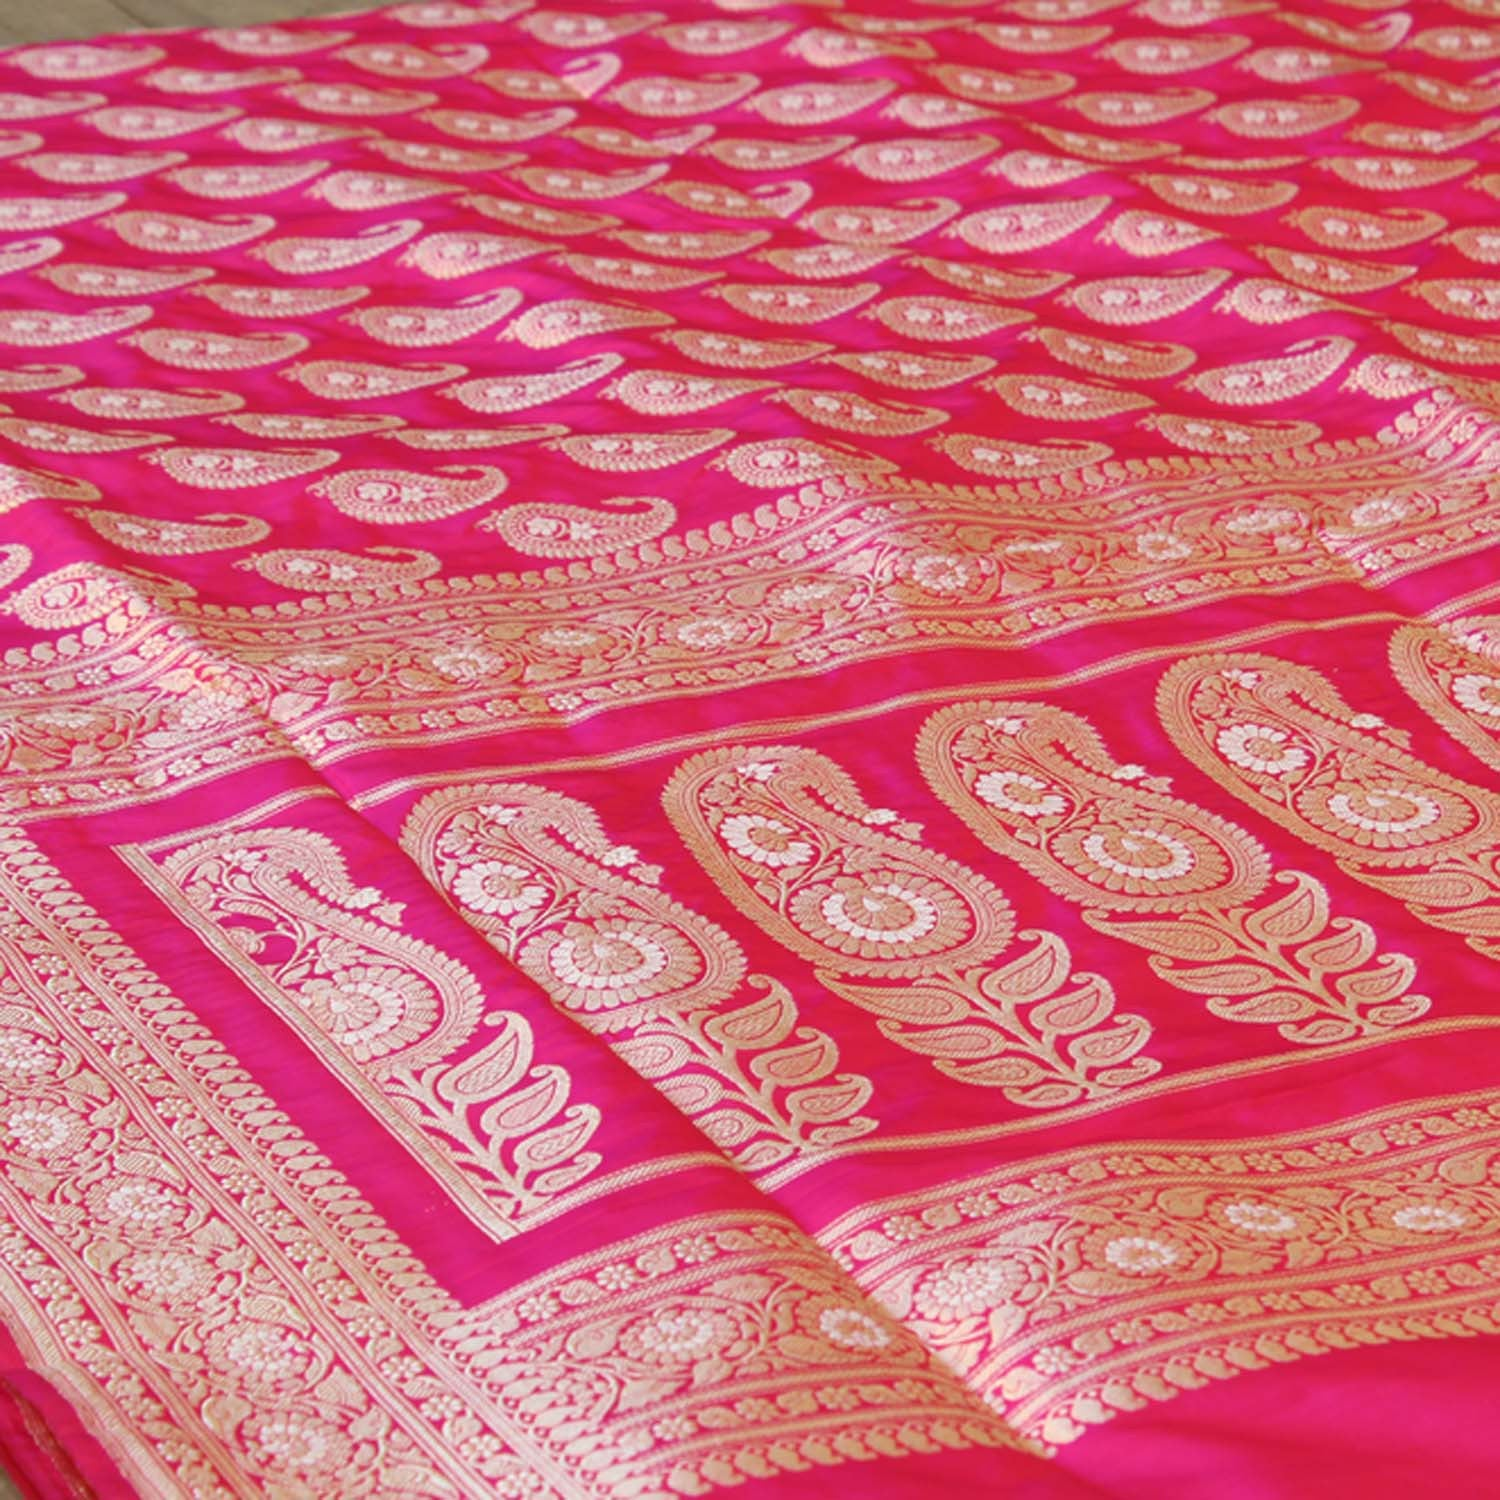 Red-Indian Pink Shot Color Pure Katan Silk Banarasi Handloom Saree - Tilfi - 2